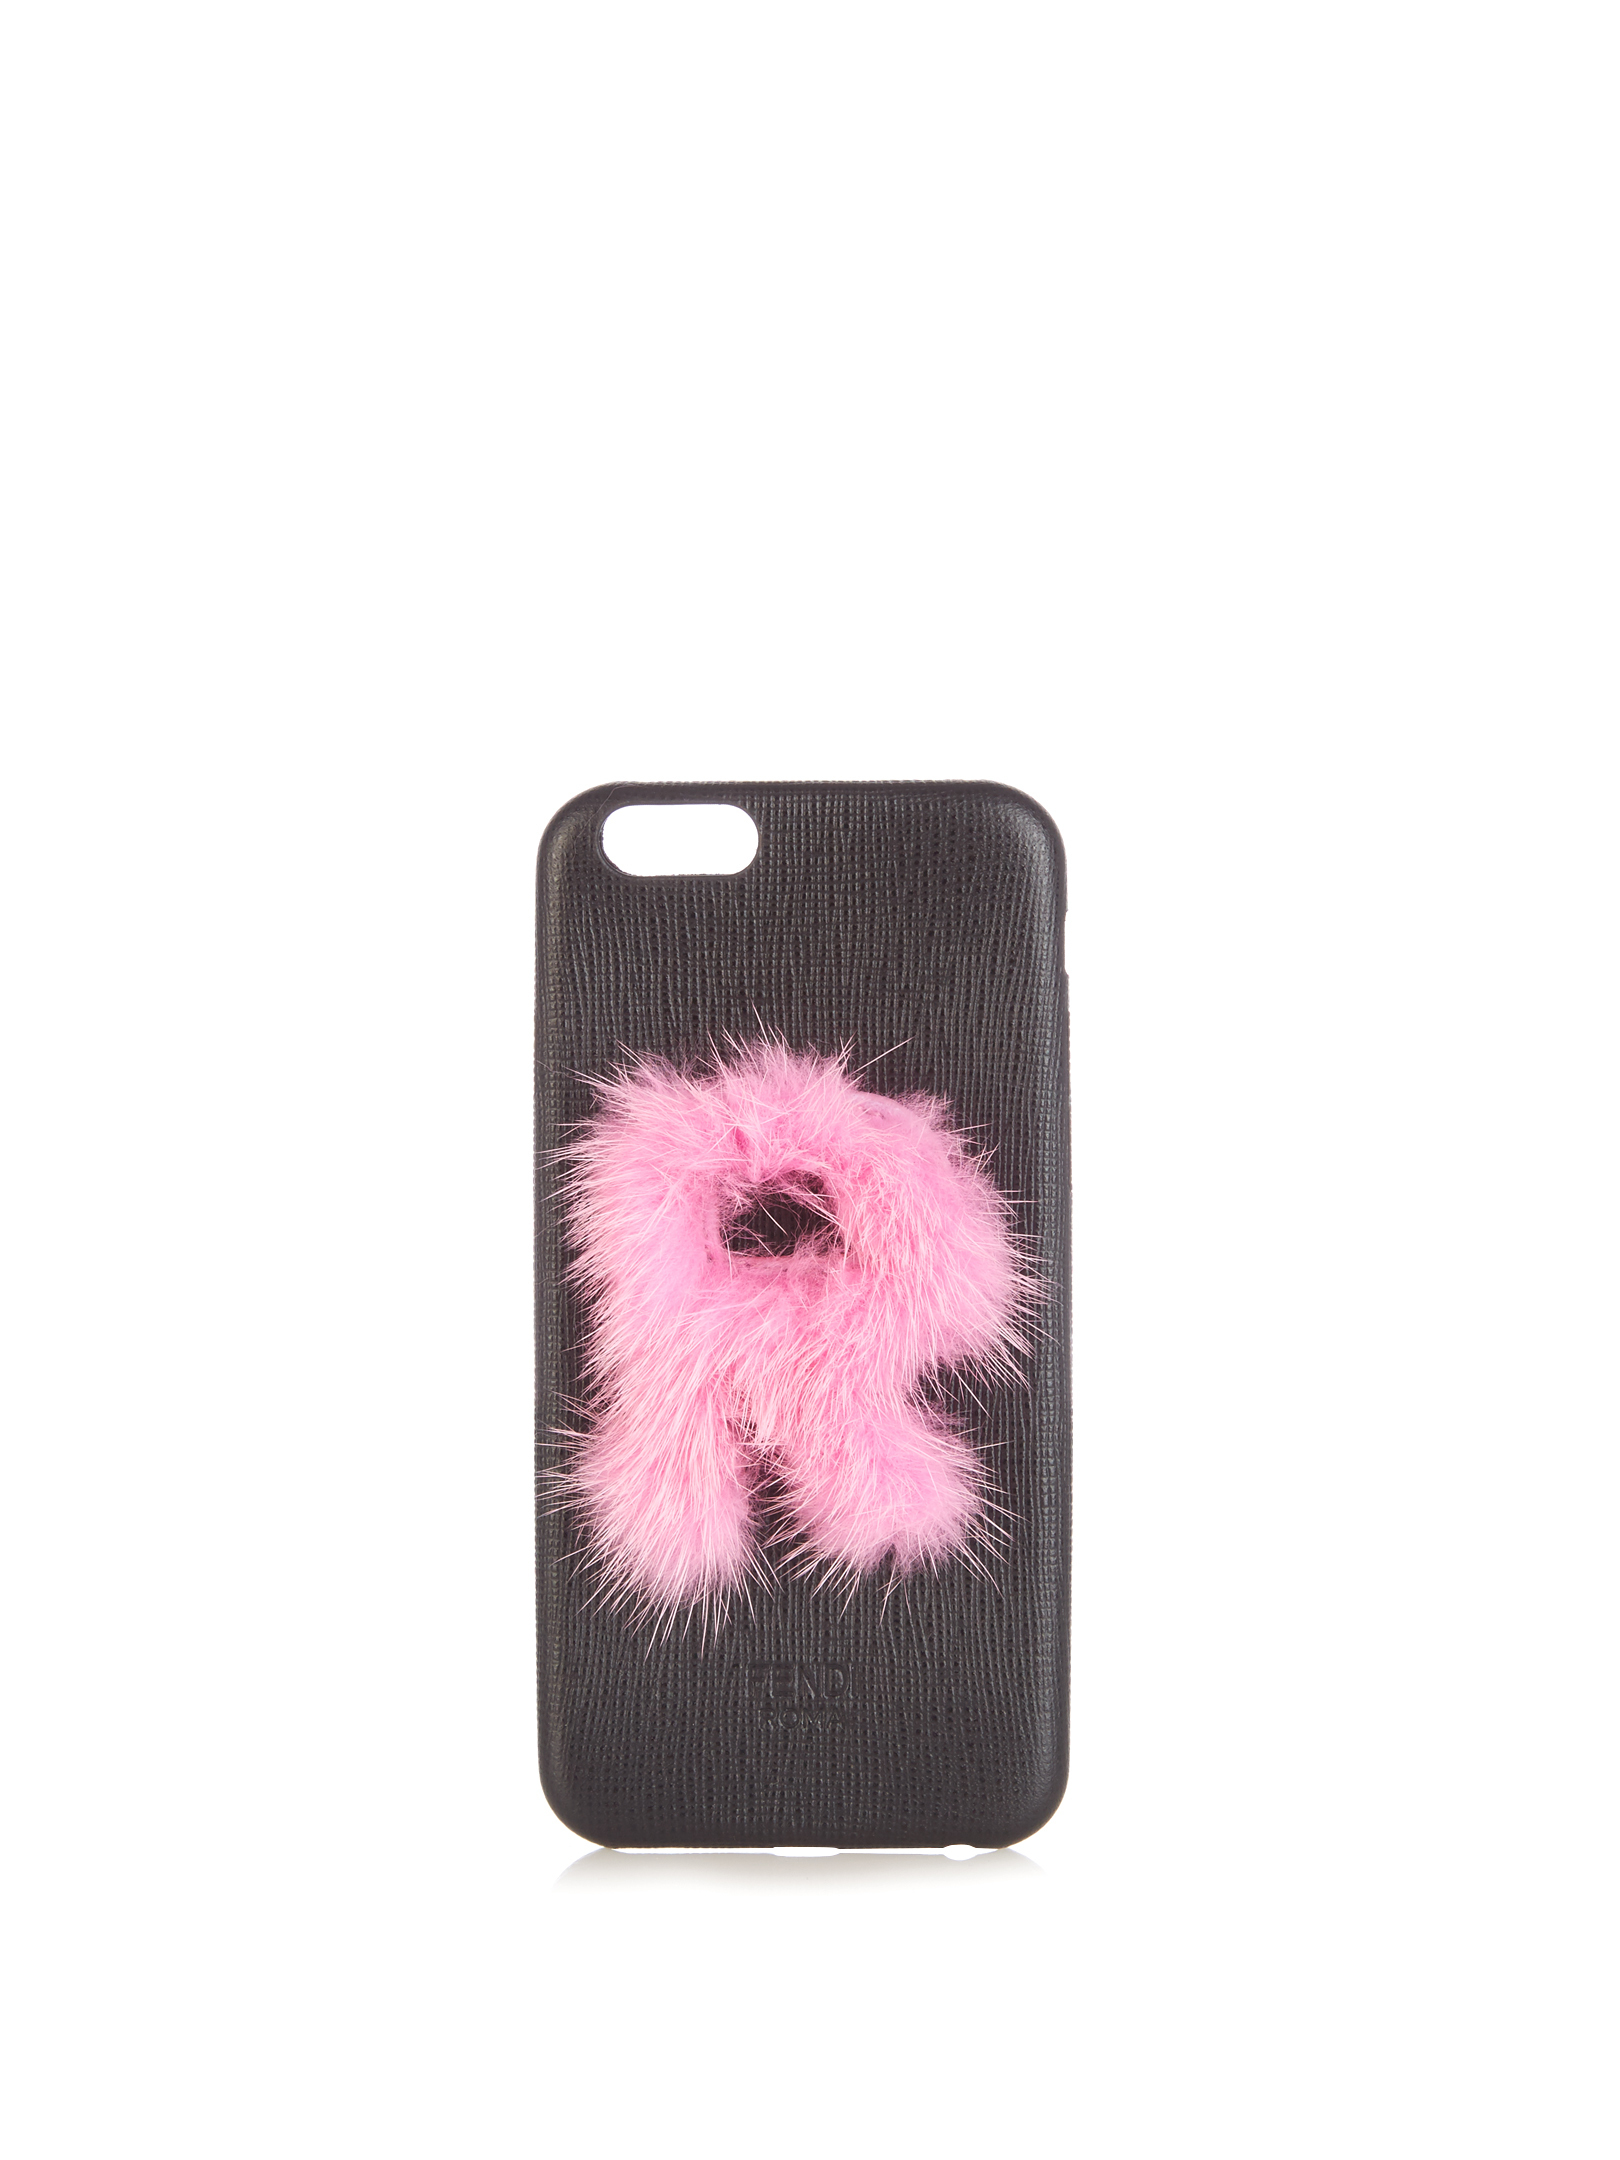 【SALE】R mink-fur and leather iPhone6 case